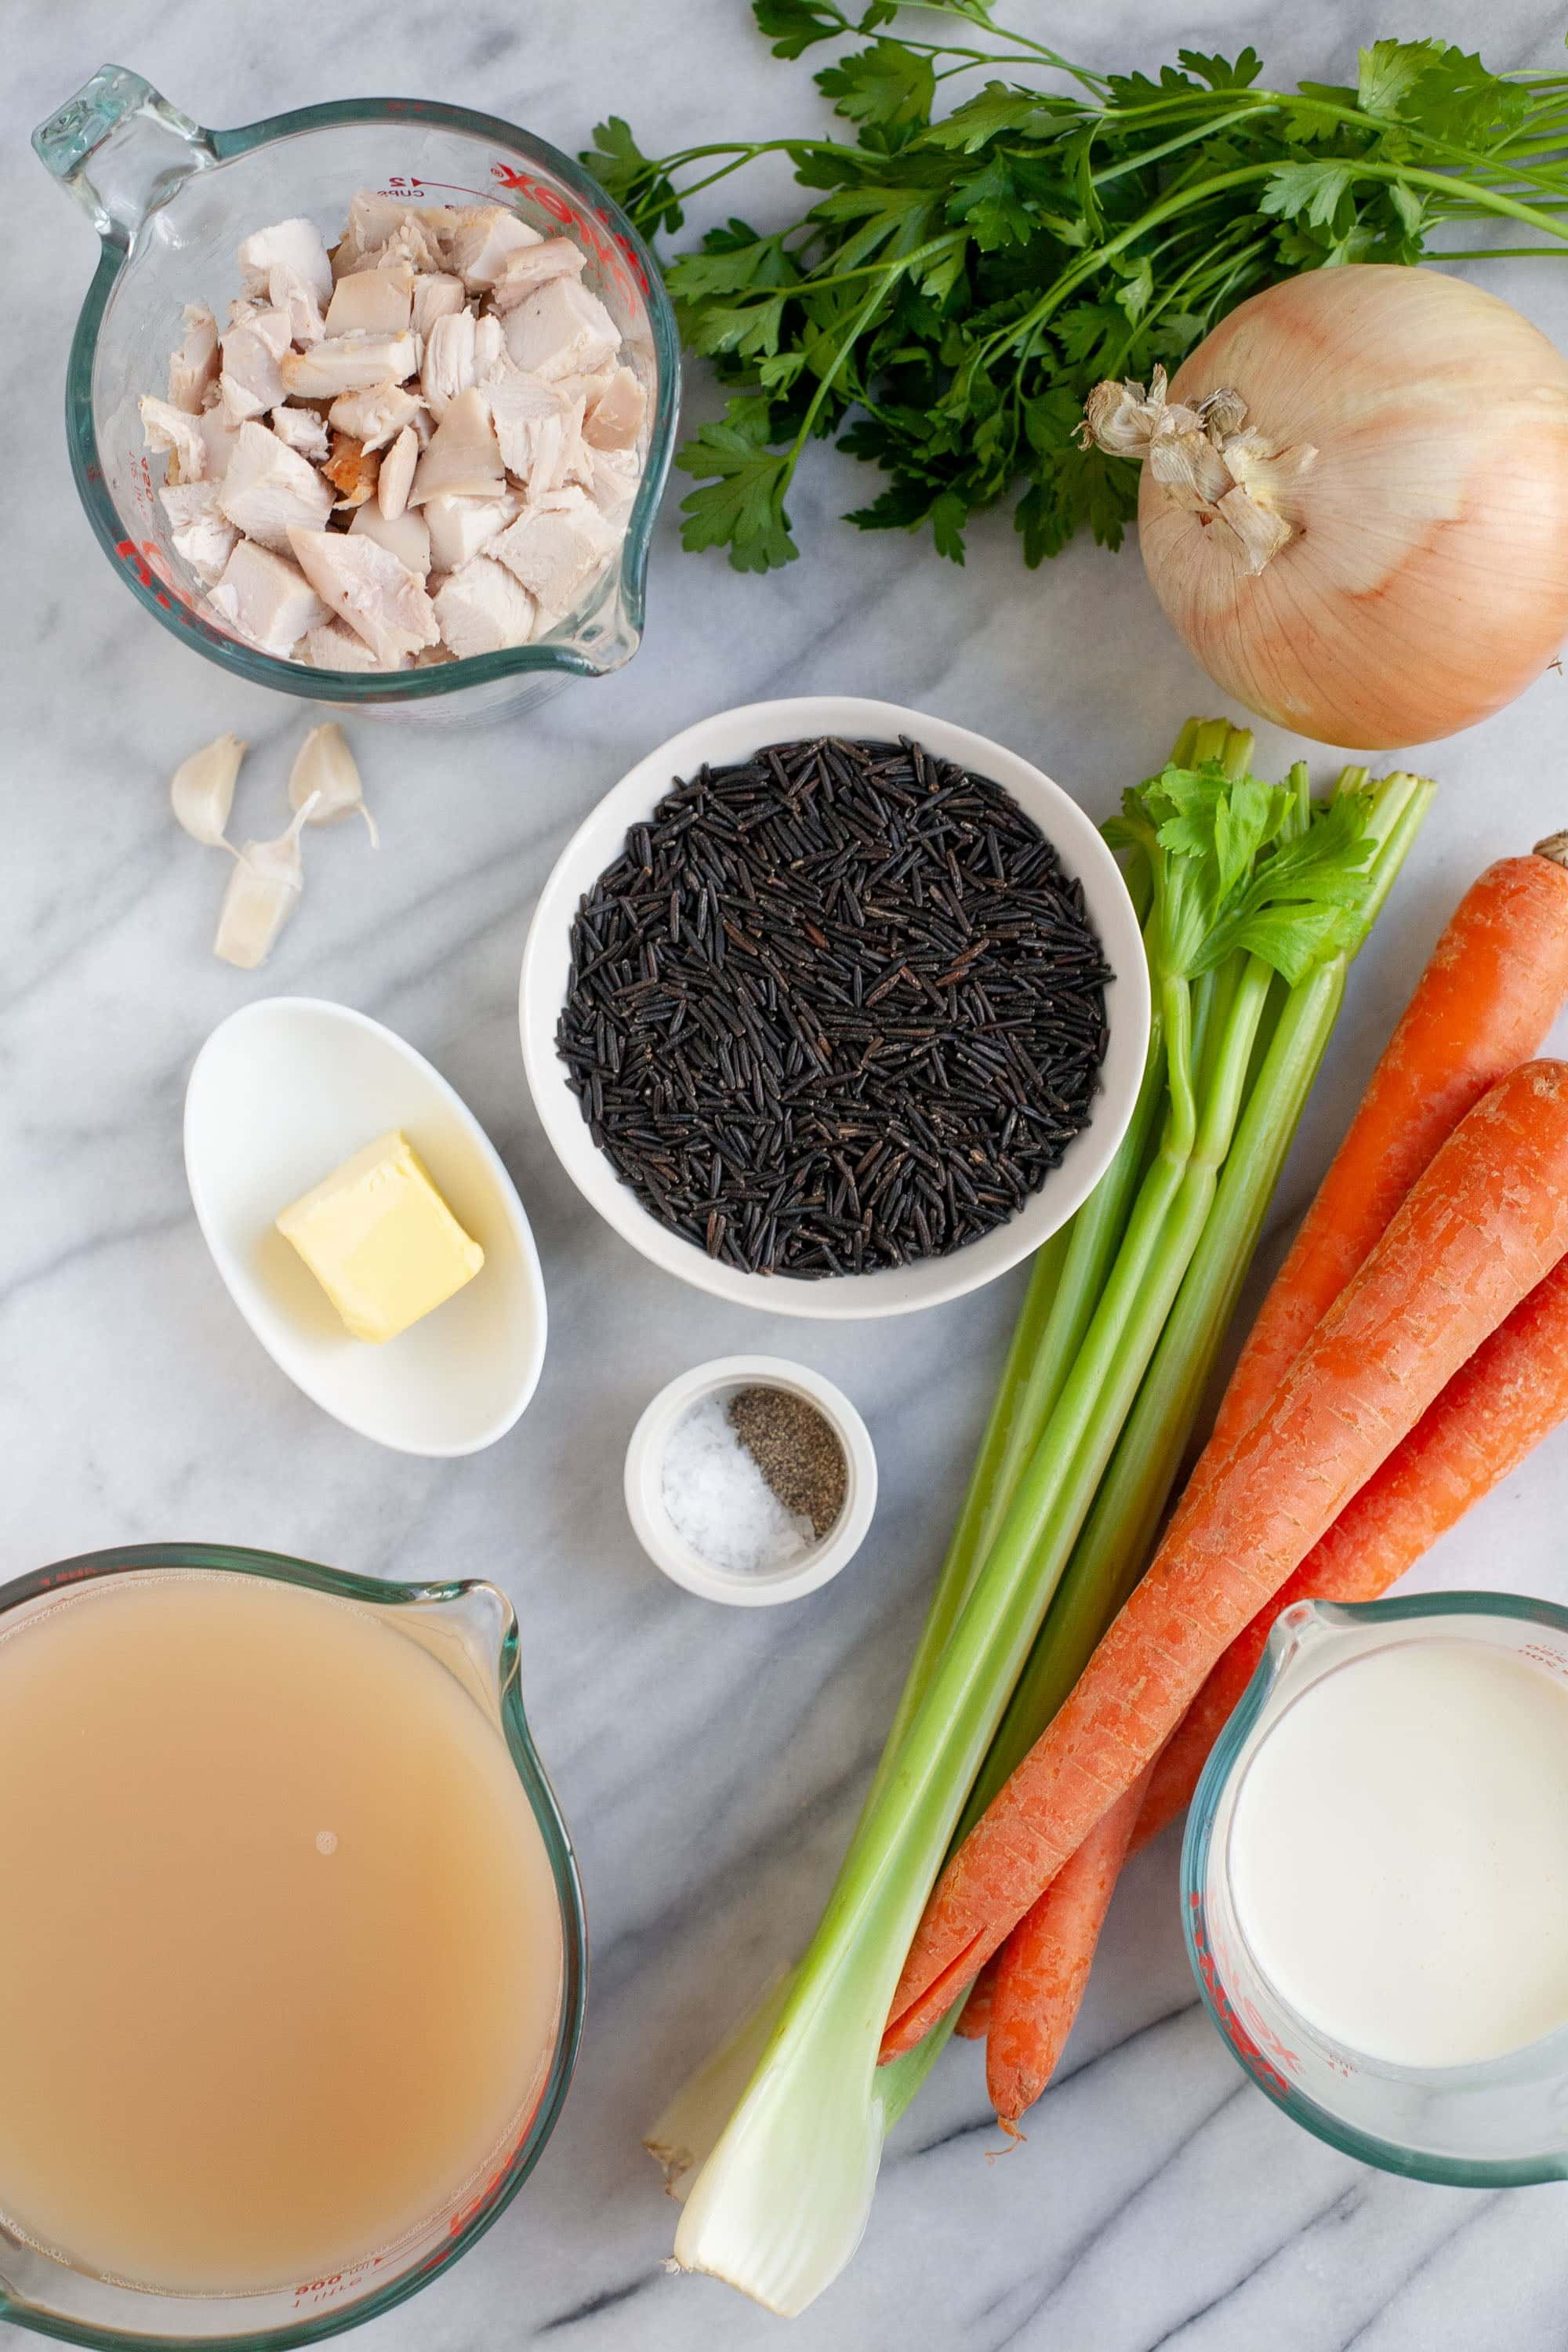 Ingredients for Cream of Turkey and Wild Rice Soup on a marble background - turkey stock, wild rice, vegetables, butter, turkey, spices